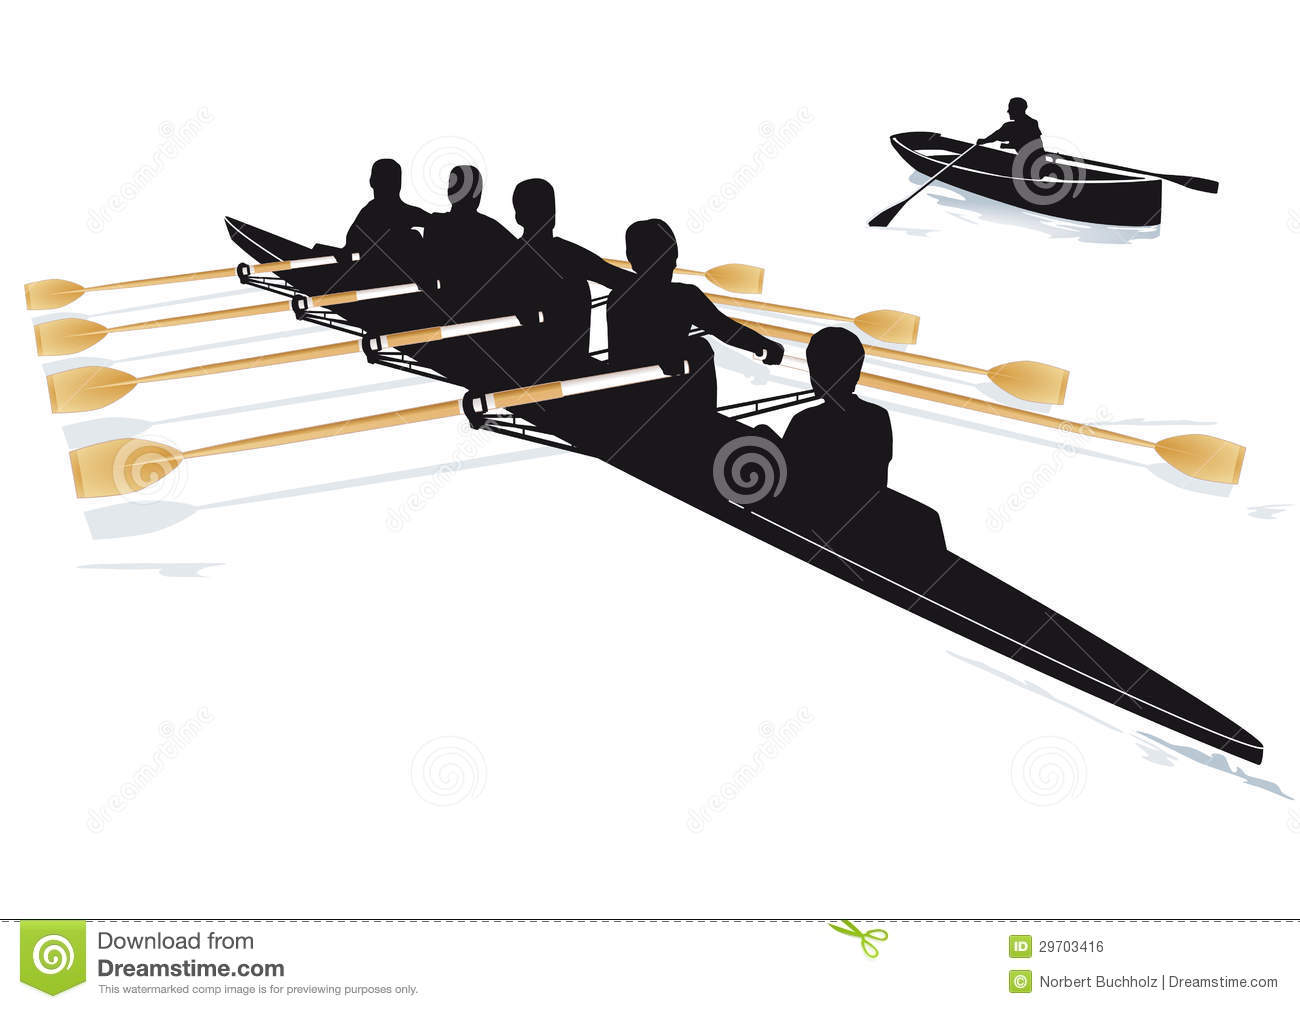 Rowing boats stock photo. Image of race, outdoor, rowing ...